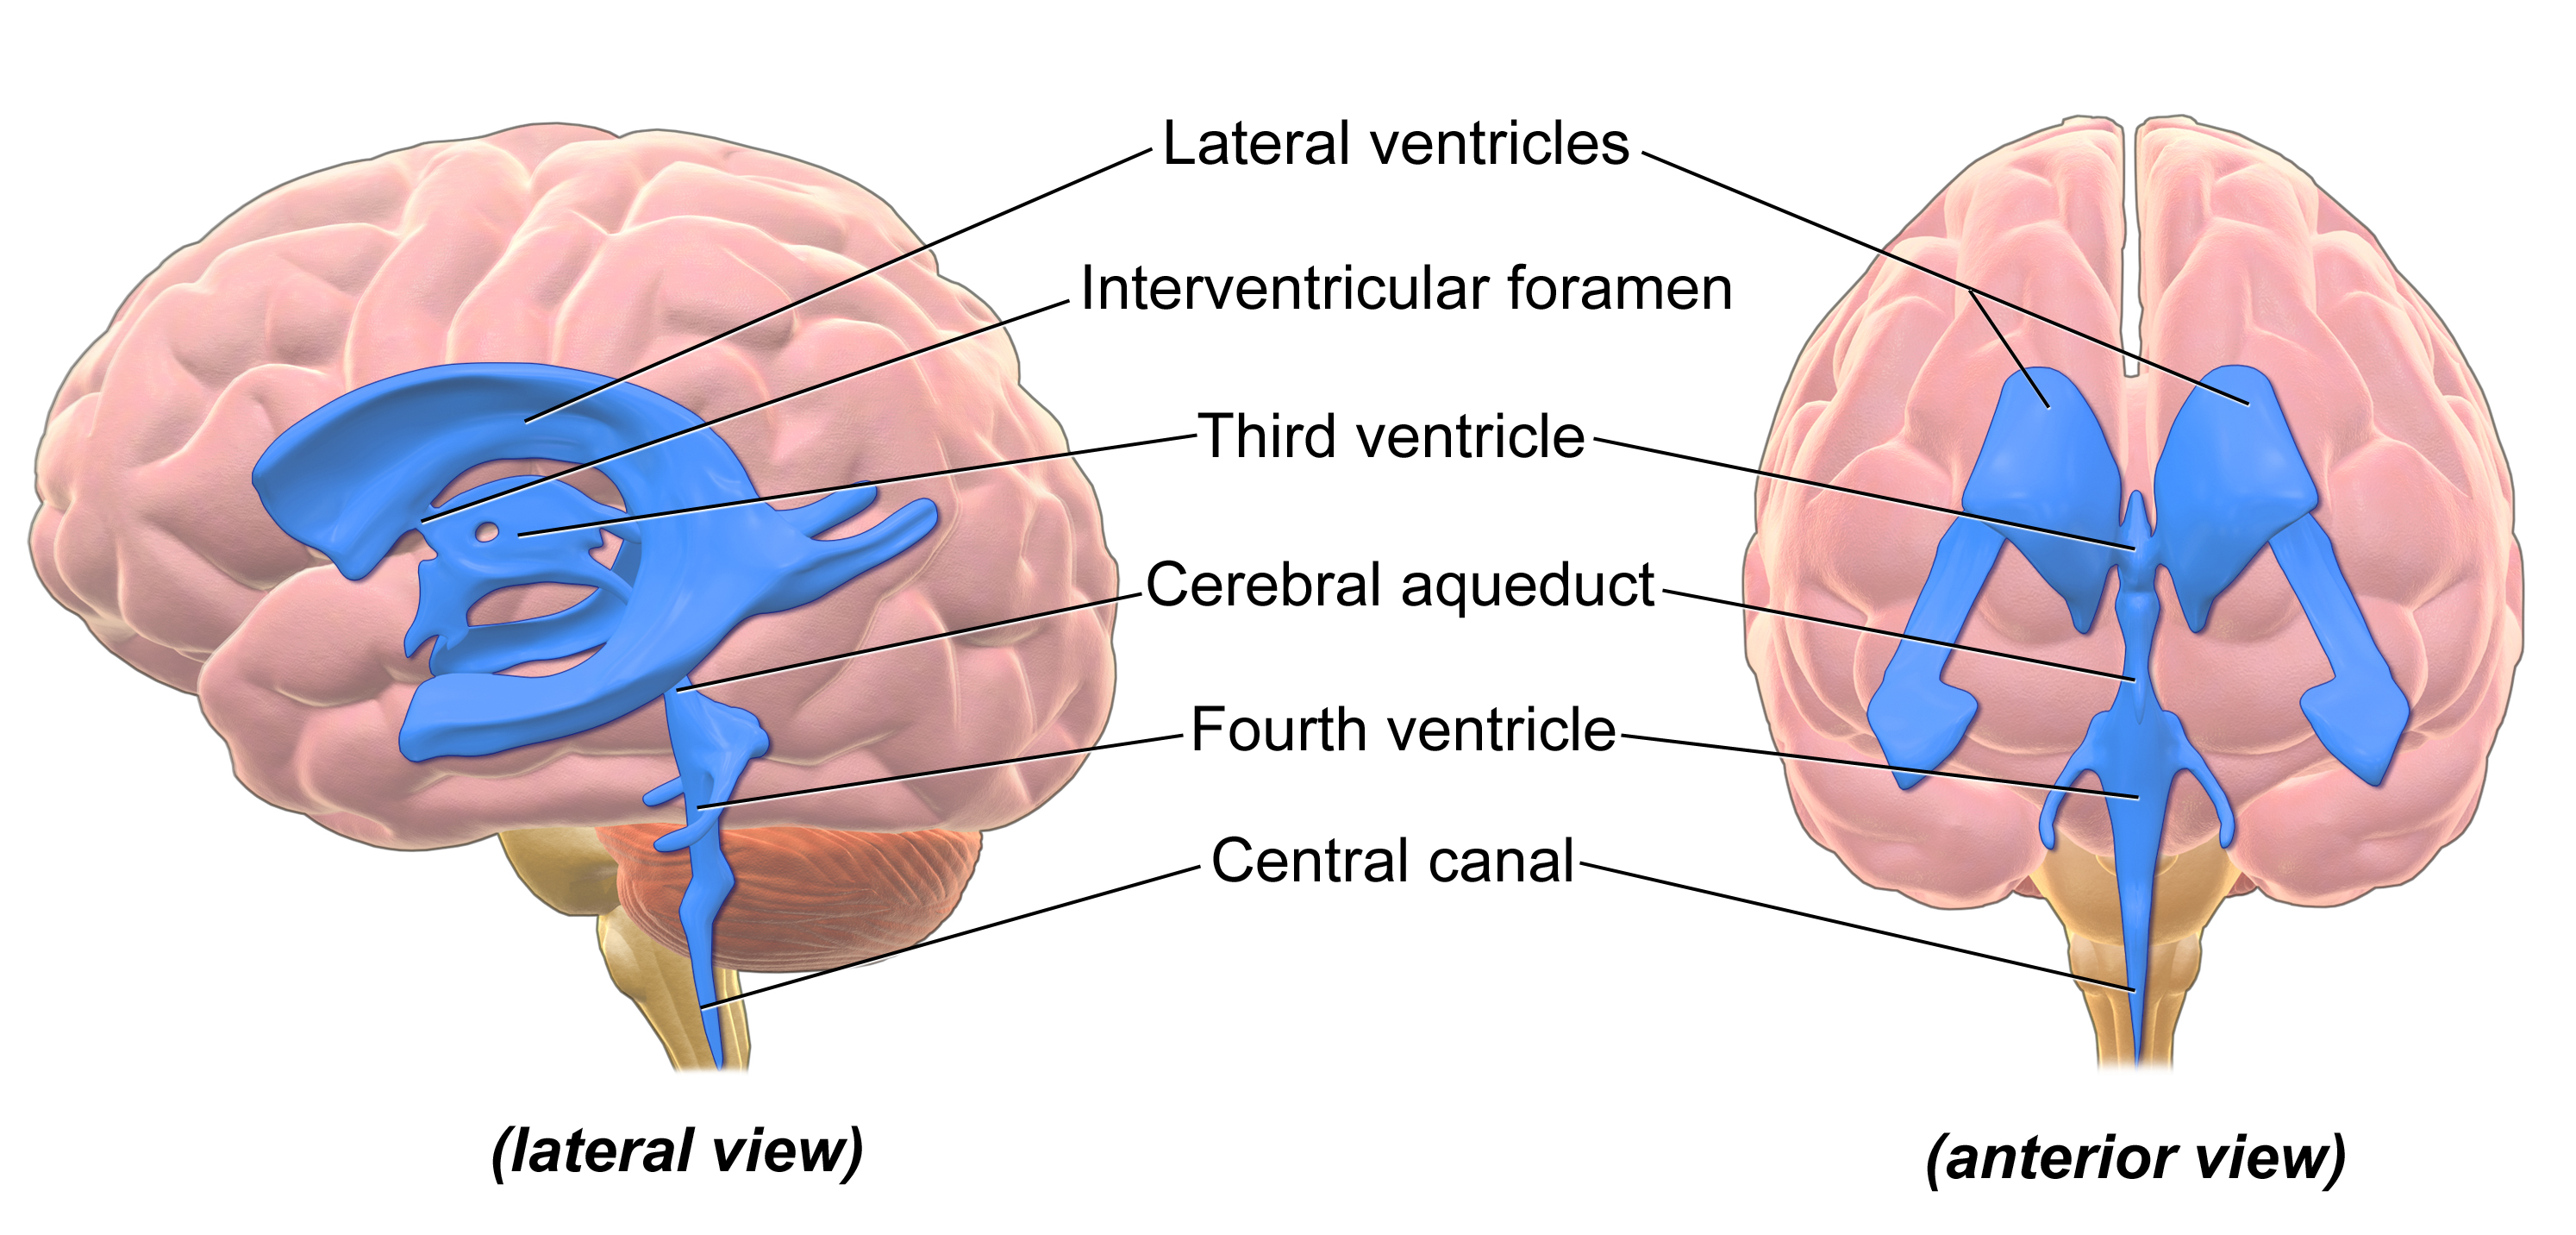 Blausen_0896_Ventricles_Brain.png | Anatomy & Physiology Diagrams ...